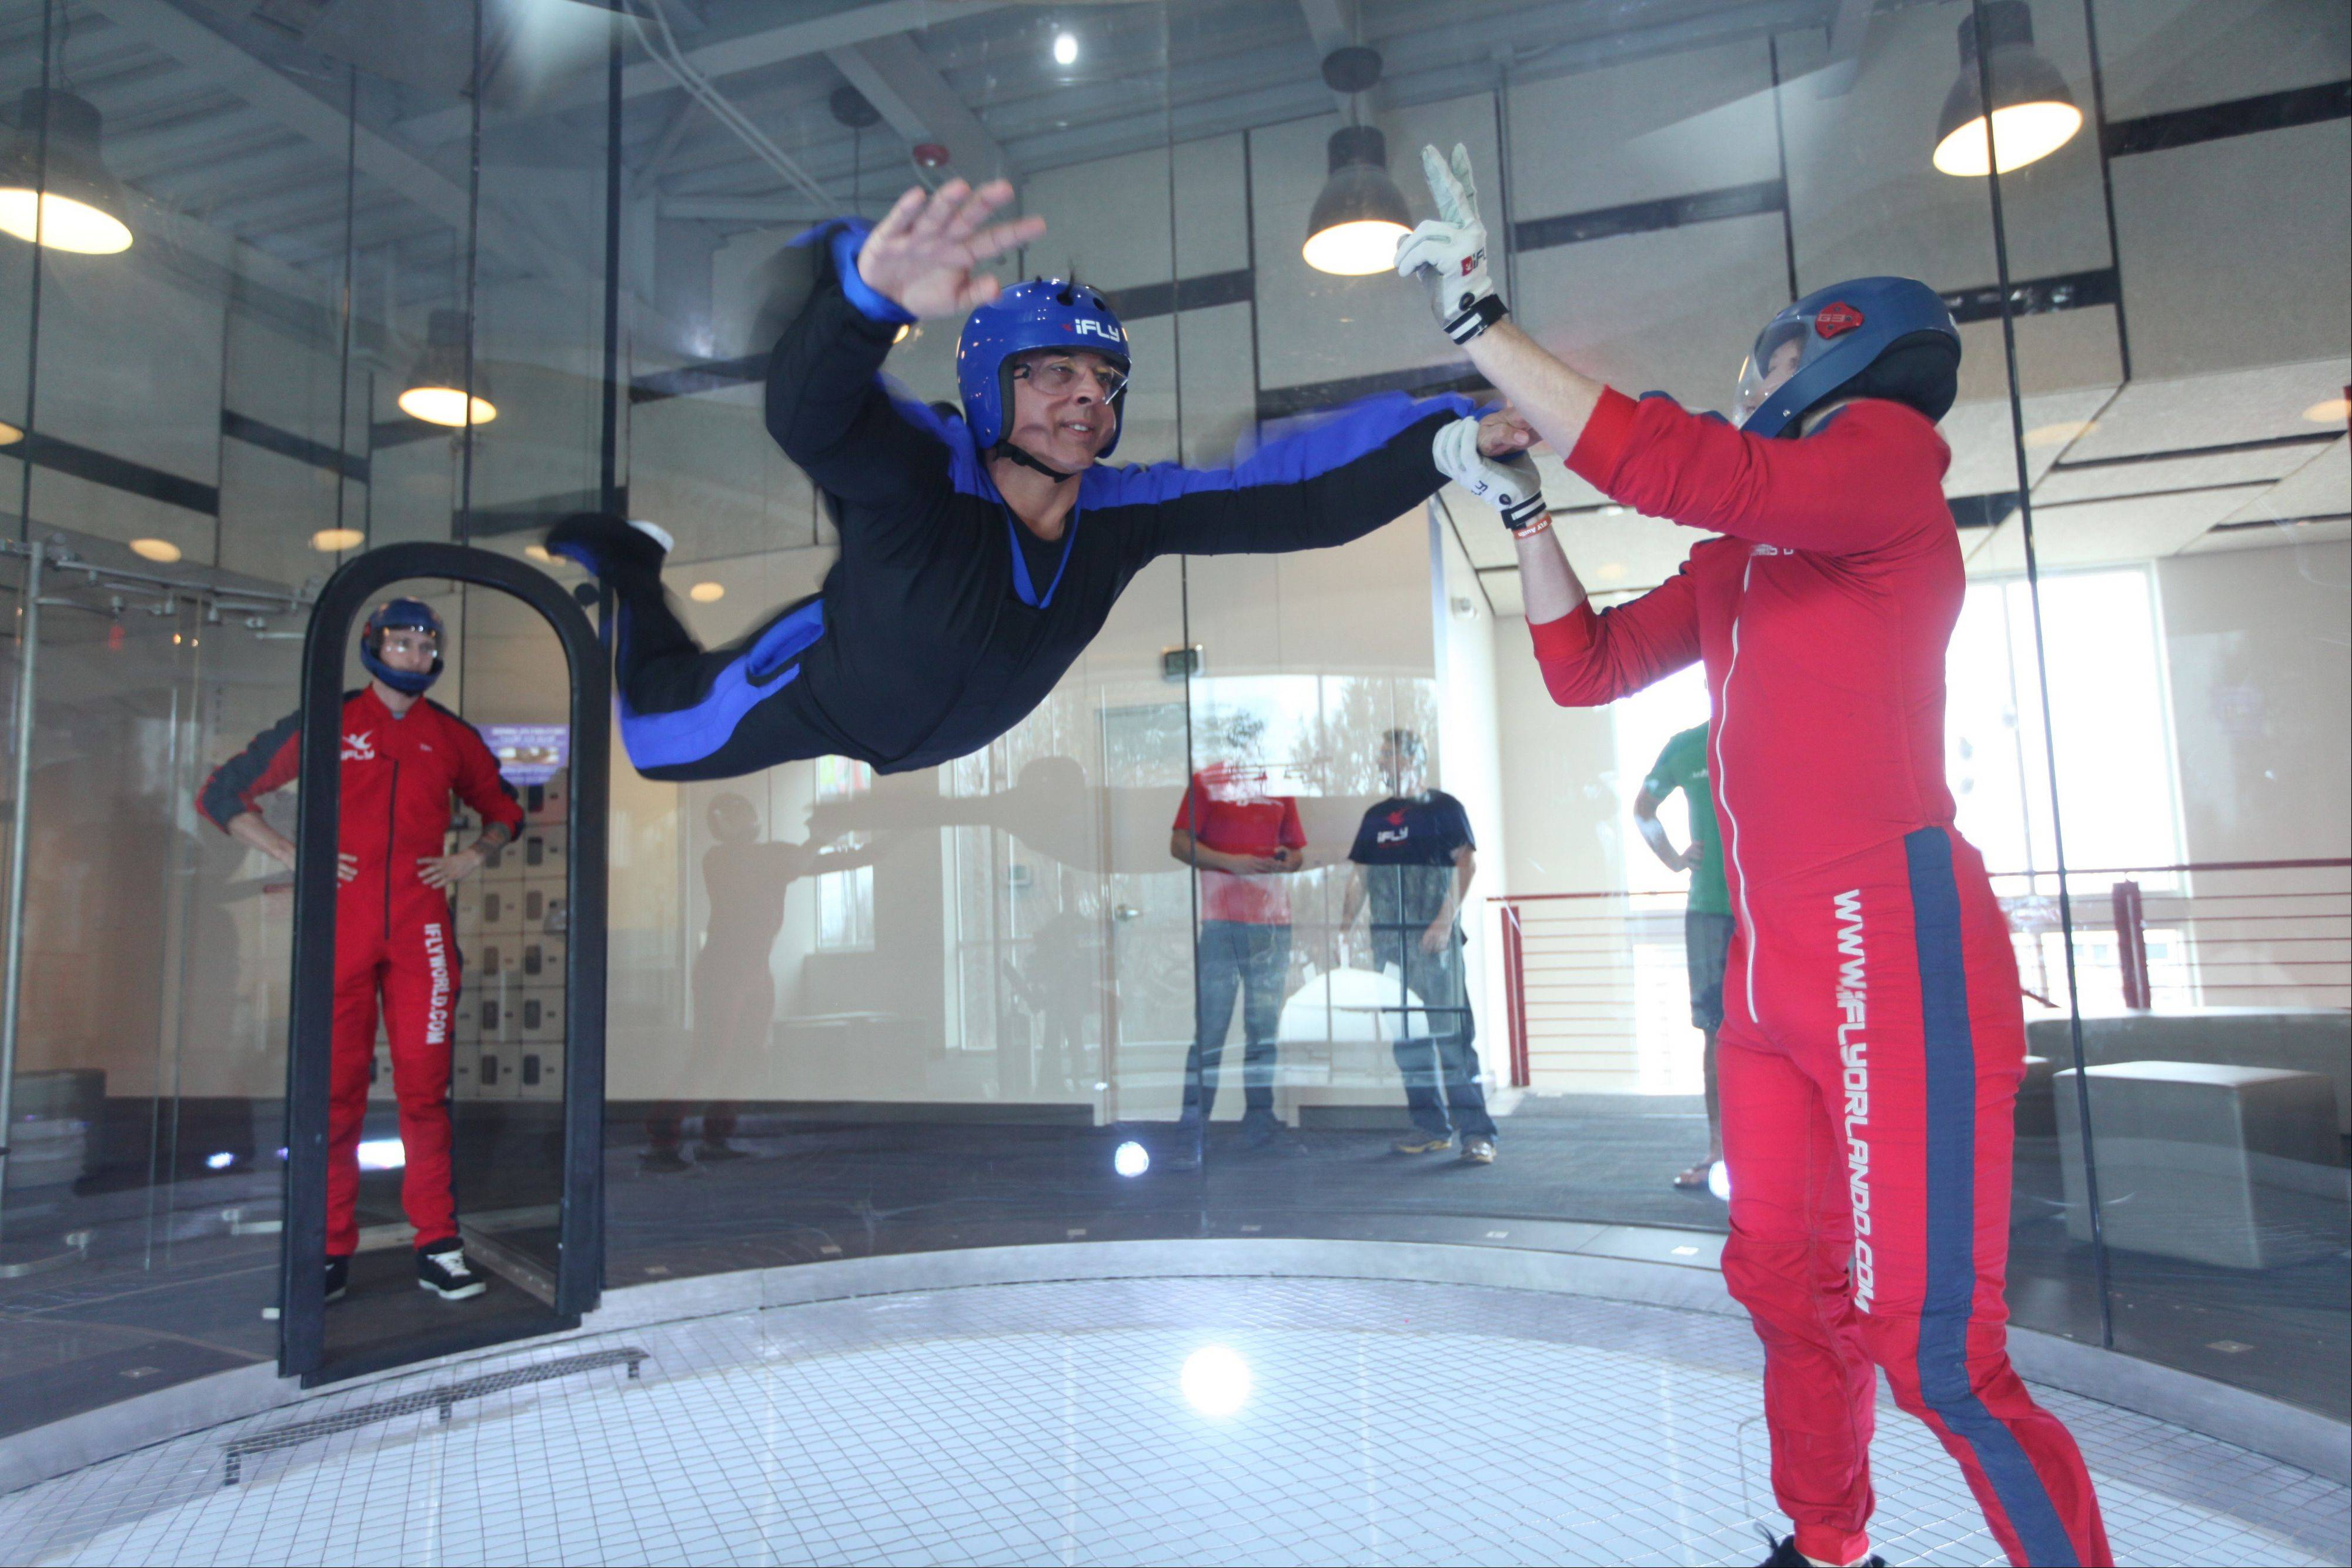 IFly is building an indoor sky-diving center in Naperville and hopes to open by April. The city council on Tuesday agreed to defer payment of electric infrastructure availability fees due from iFly and other developers seeking building permits until the fees can be reviewed.